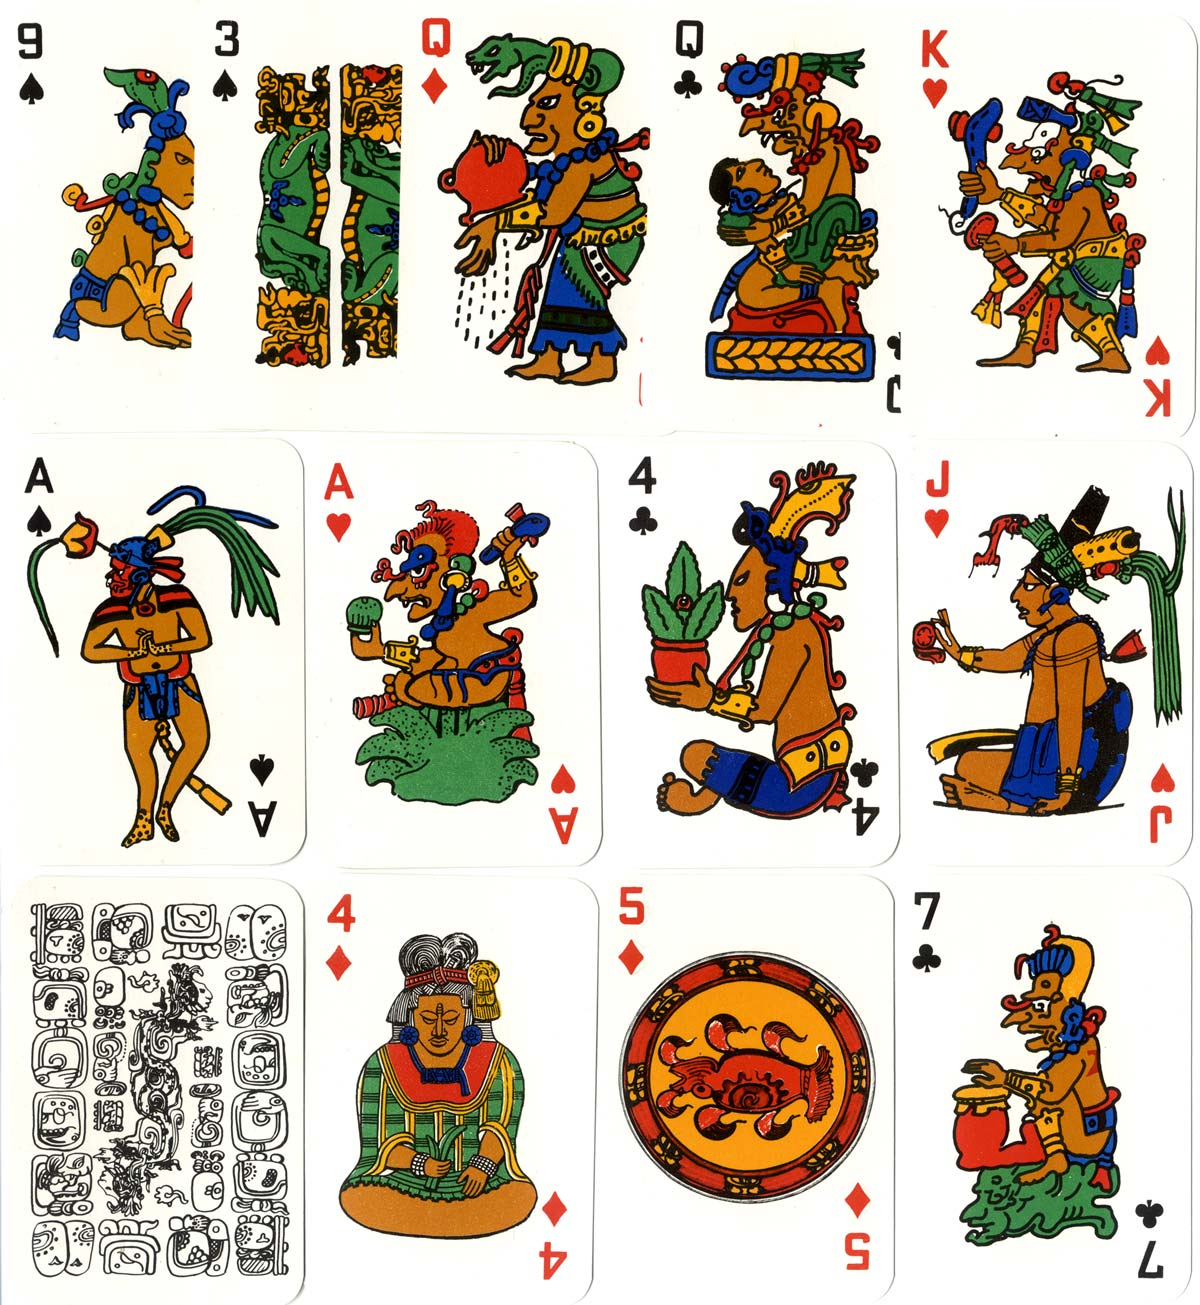 Mayan Mythology Playing-cards from Guatemala, printed by Litografía José Arimany Hijos